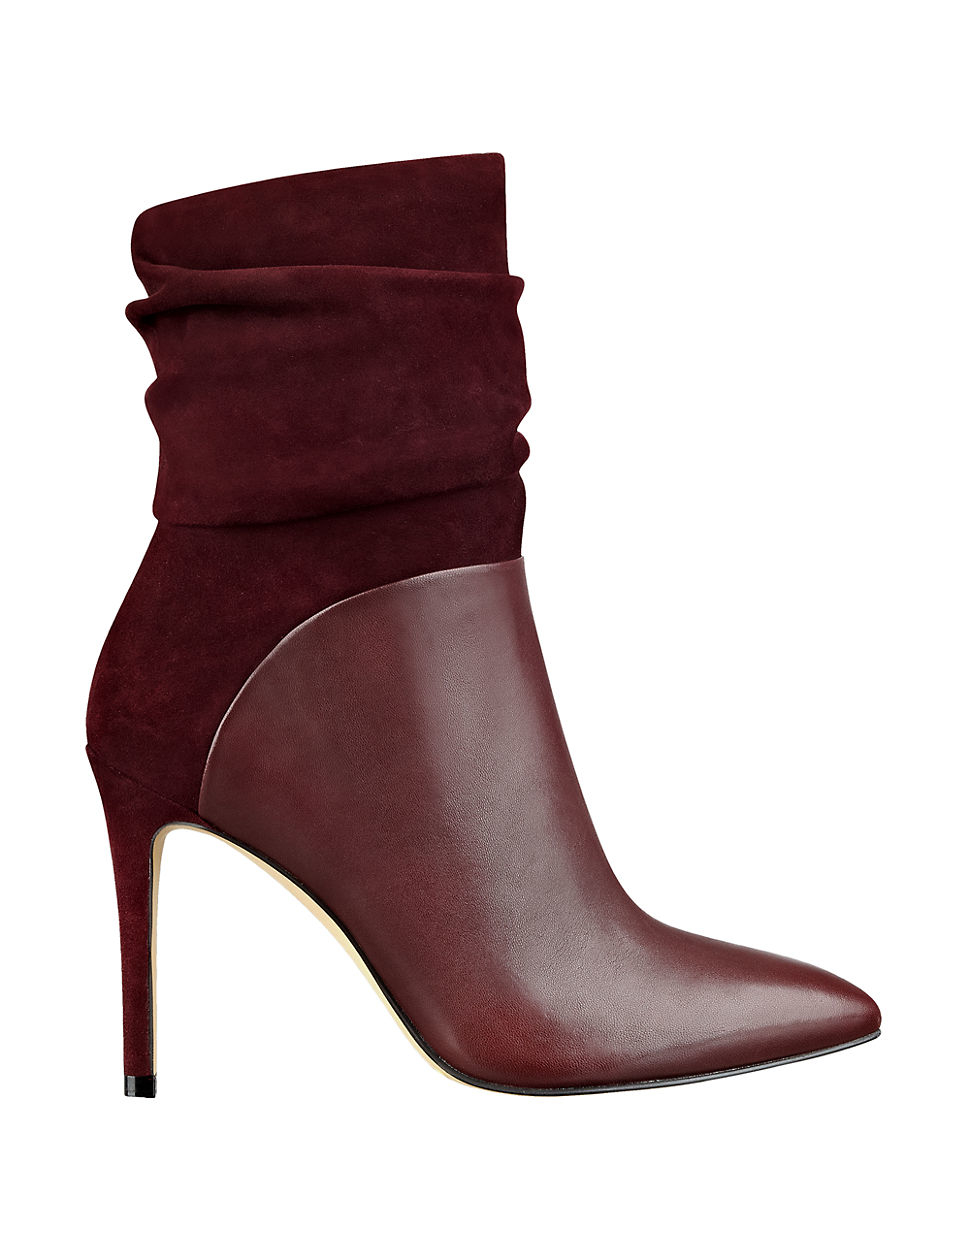 Lyst Guess Leather And Suede Ankle Boots In Purple